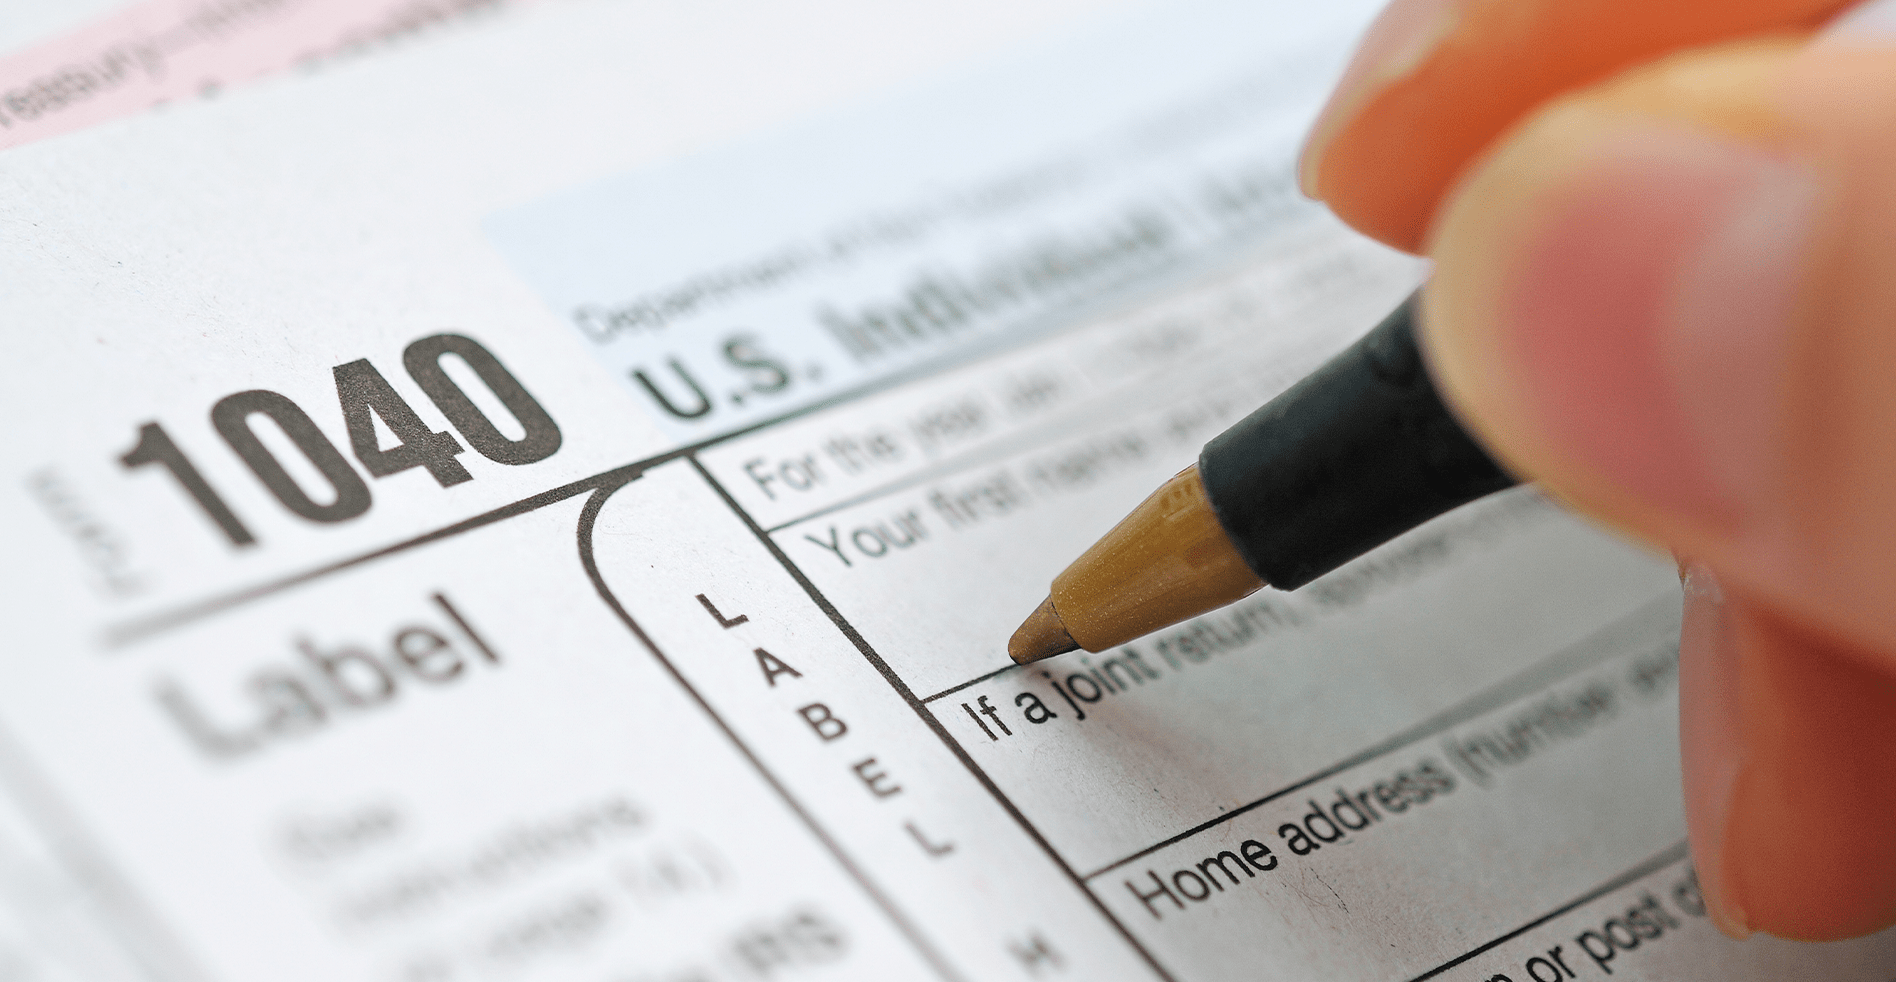 Tax season 2014 - form 1040